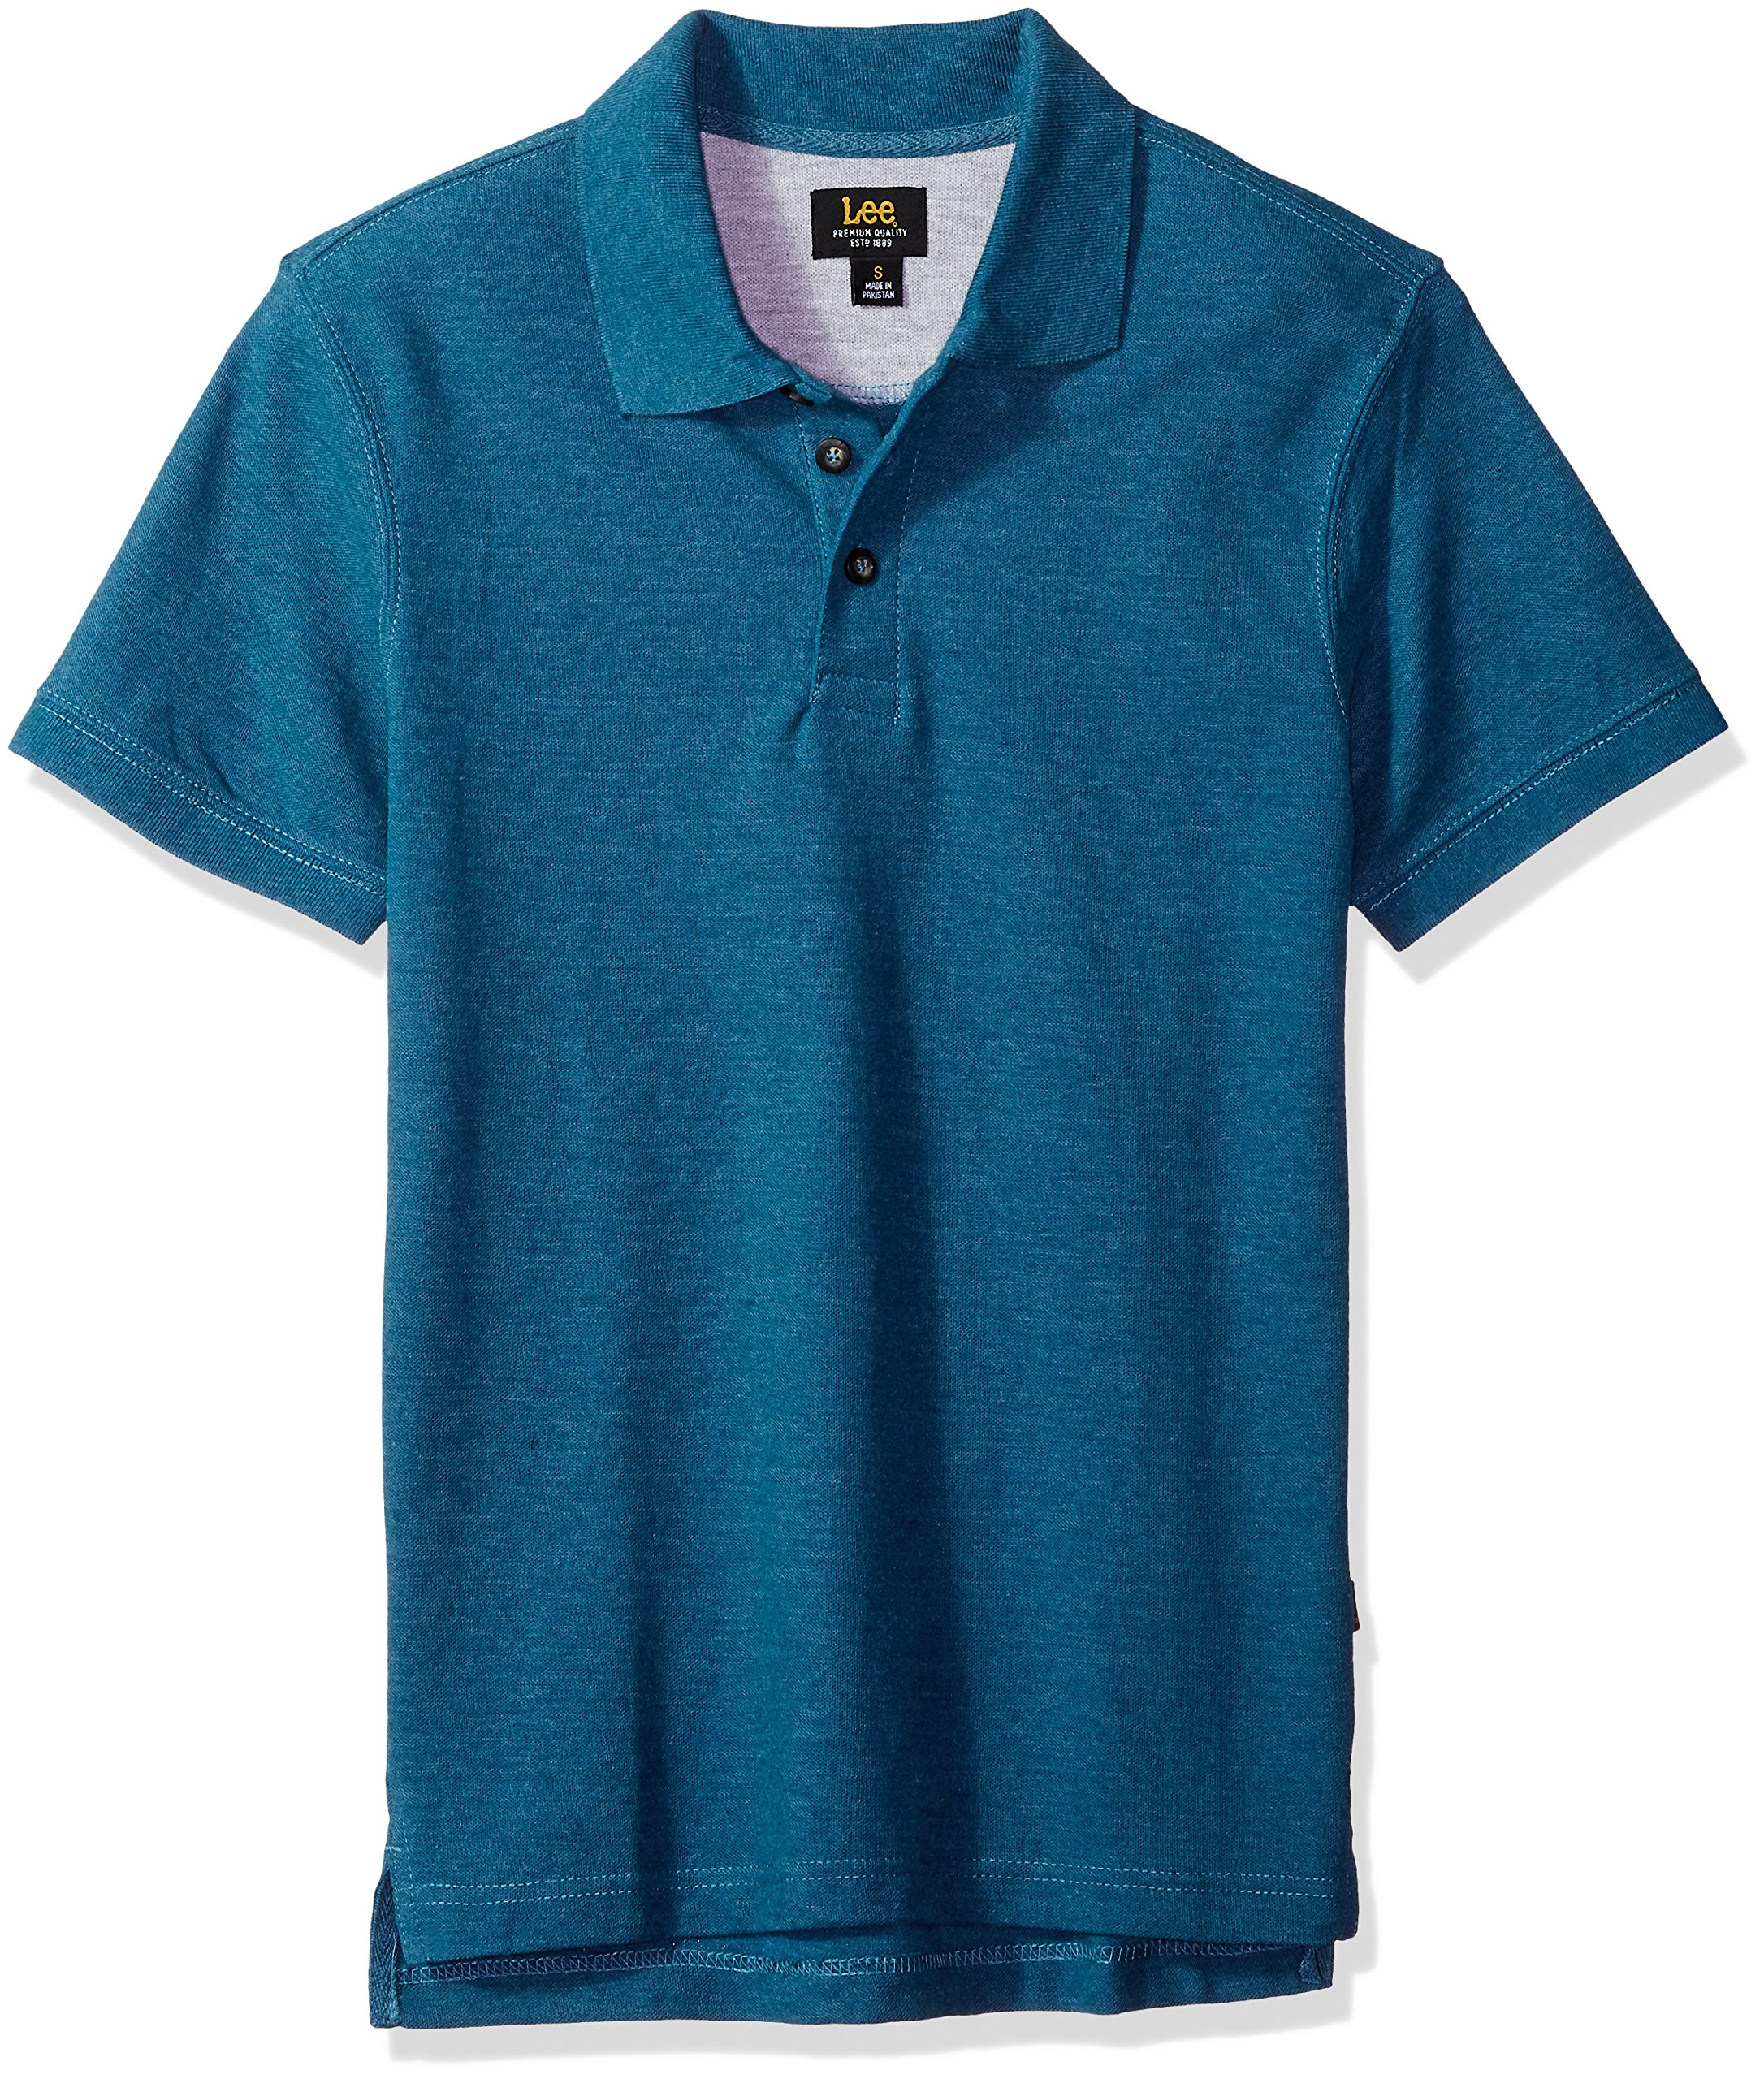 LEE Men's Size Short Sleeve Polo Tee Shirt, Moroccan Blue, 4XL Tall